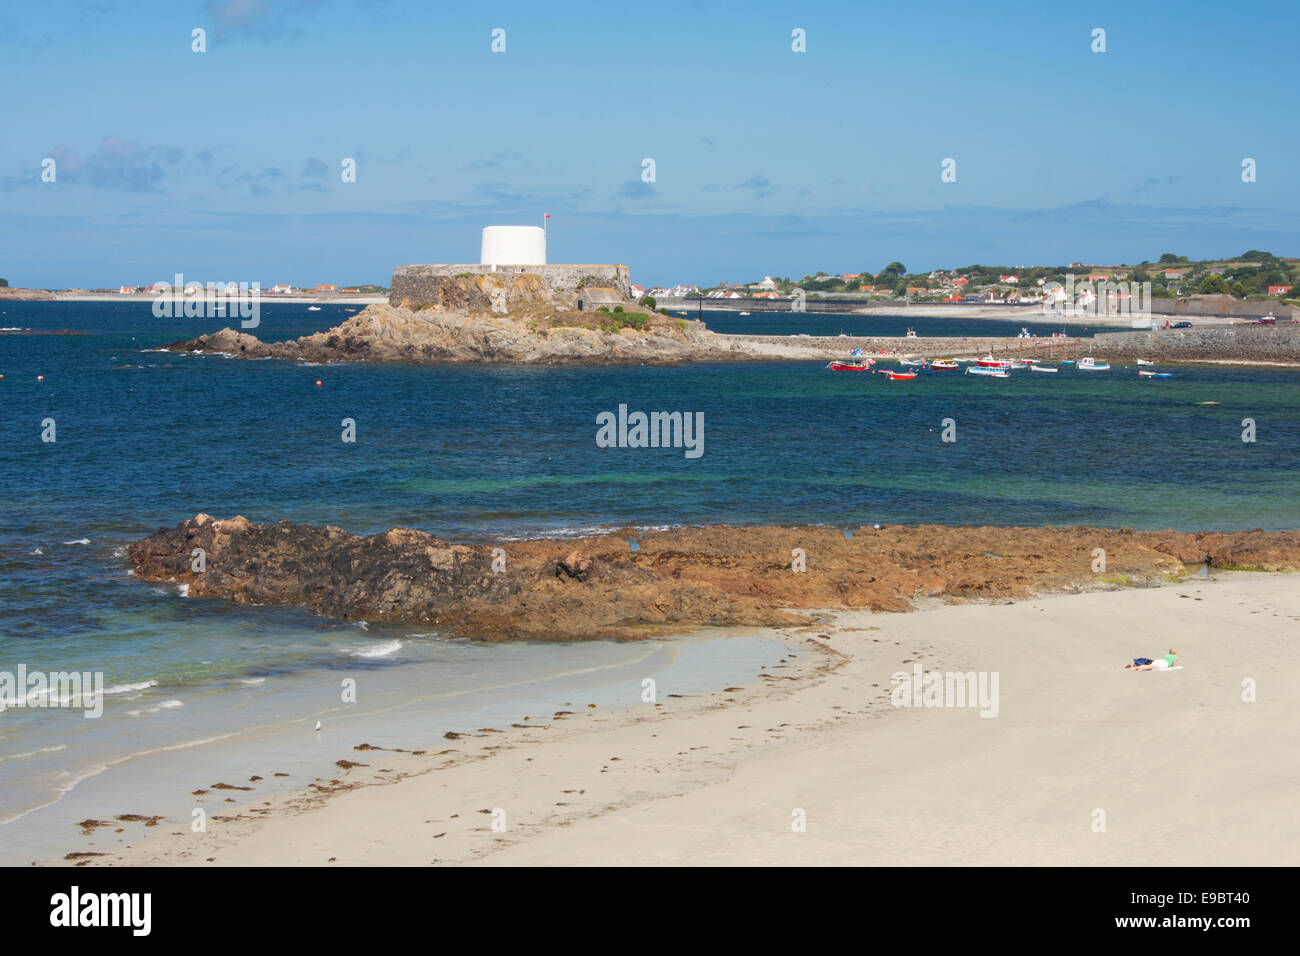 PORTELET HARBOUR AND FORTGREY MARITIME MUSEUM - Stock Image